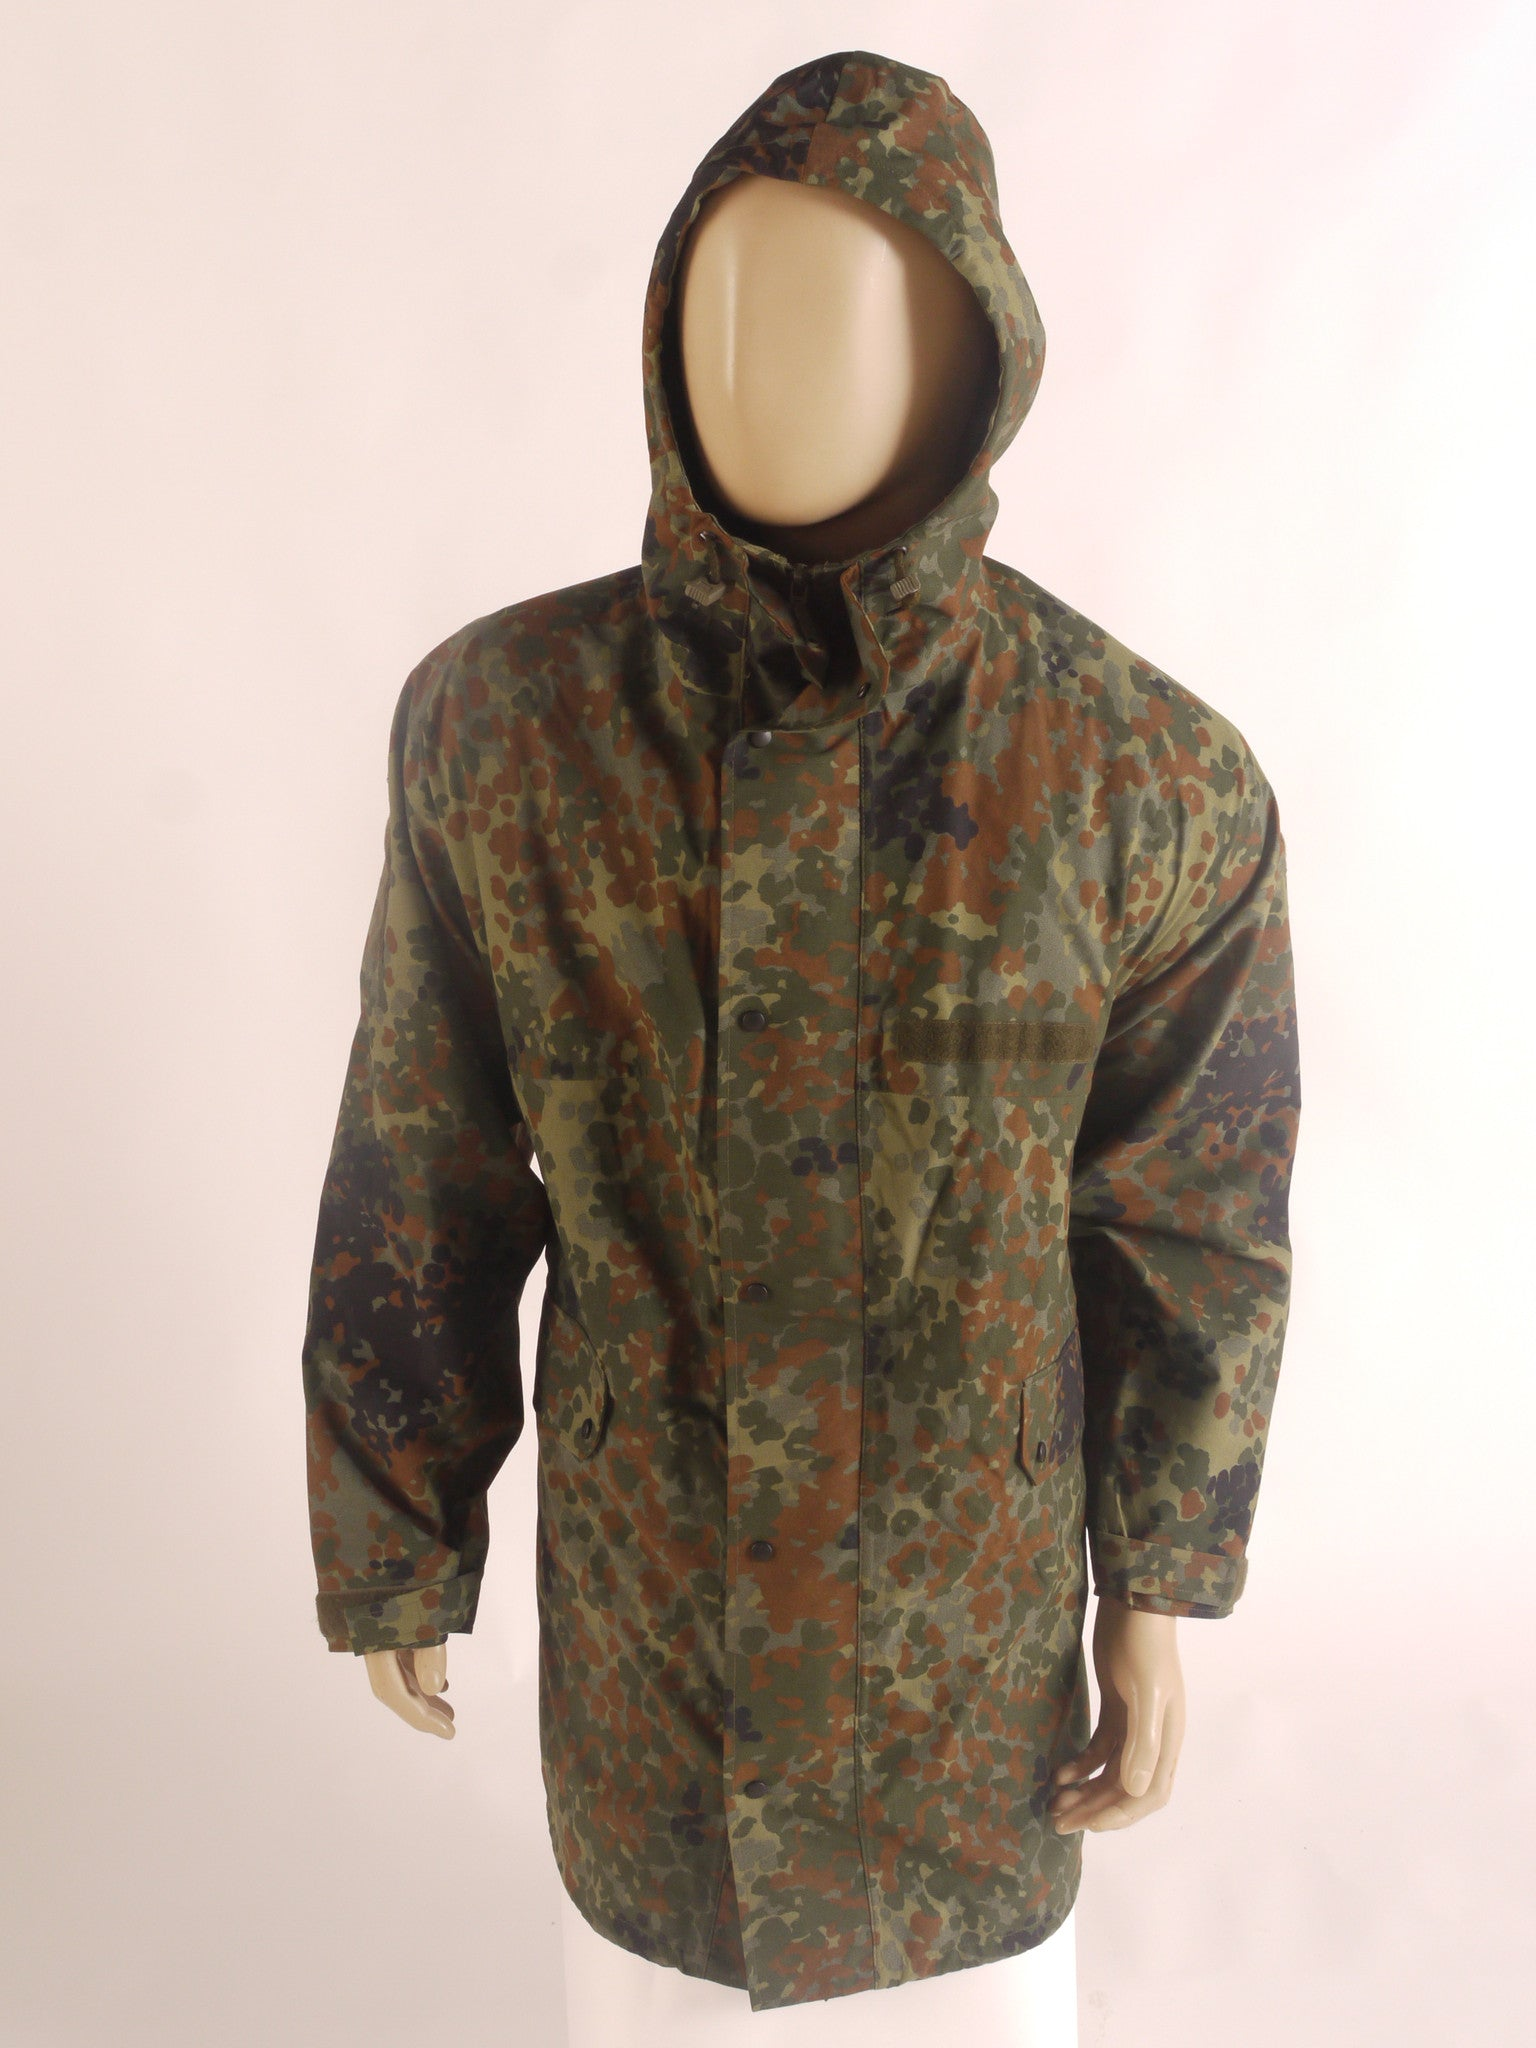 German flektarn camo waterproof jacket.